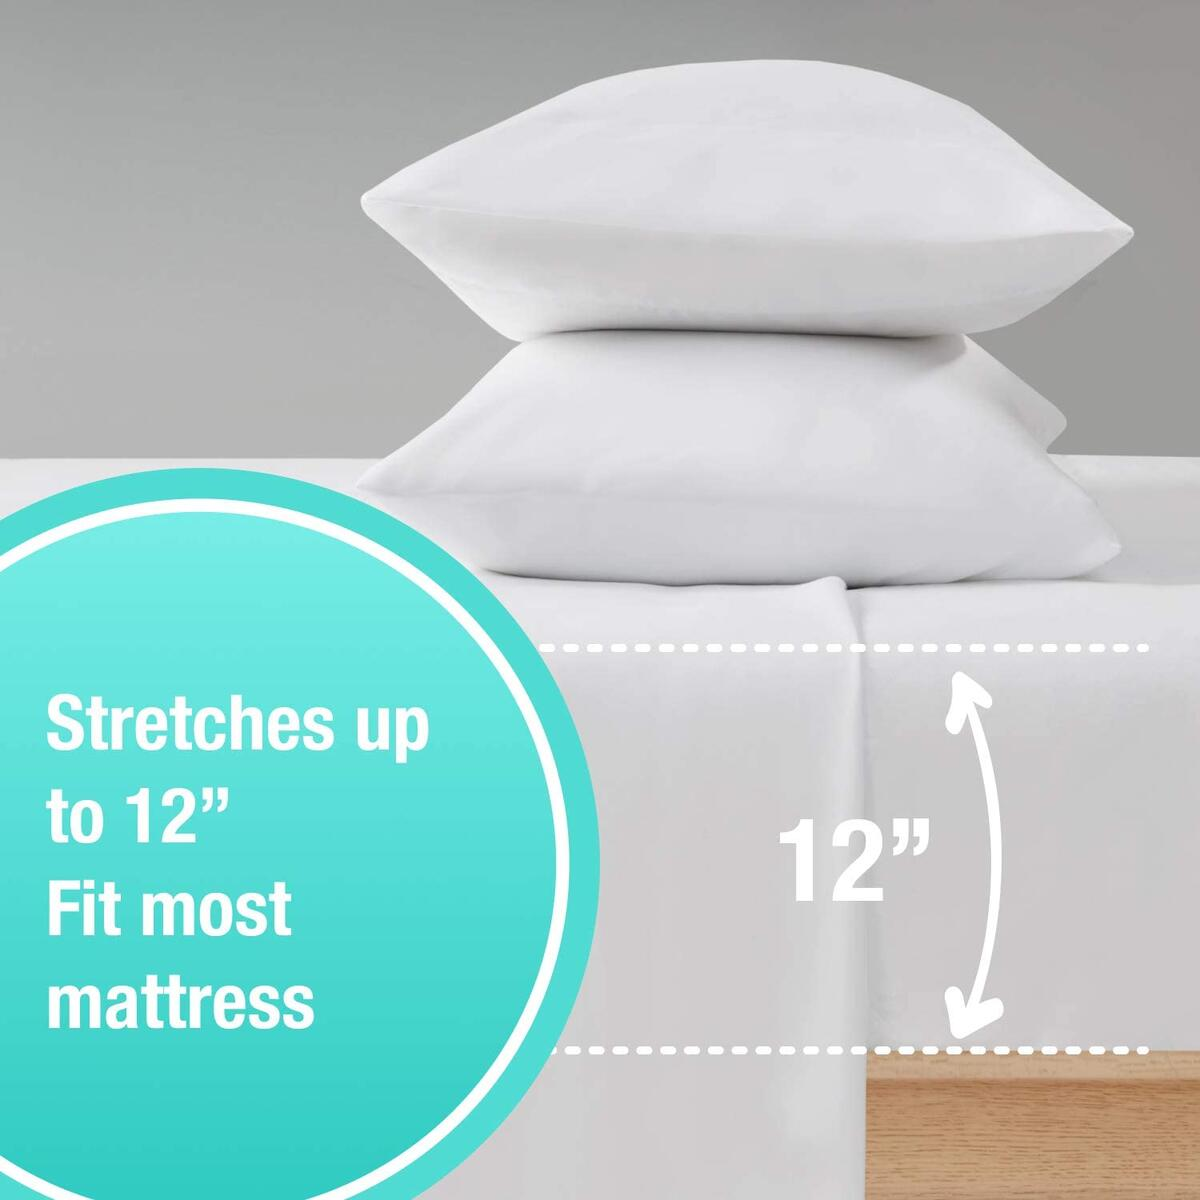 White Sheet Set Full 4 Piece - 1 Flat, 1 Fitted with Deep Pocket Fits Most Mattress, 2 Pillowcases | Soft Brushed 1800 Microfiber Blend Bed Sheet | Wrinkle, Shrinking & Color Fade Resistant